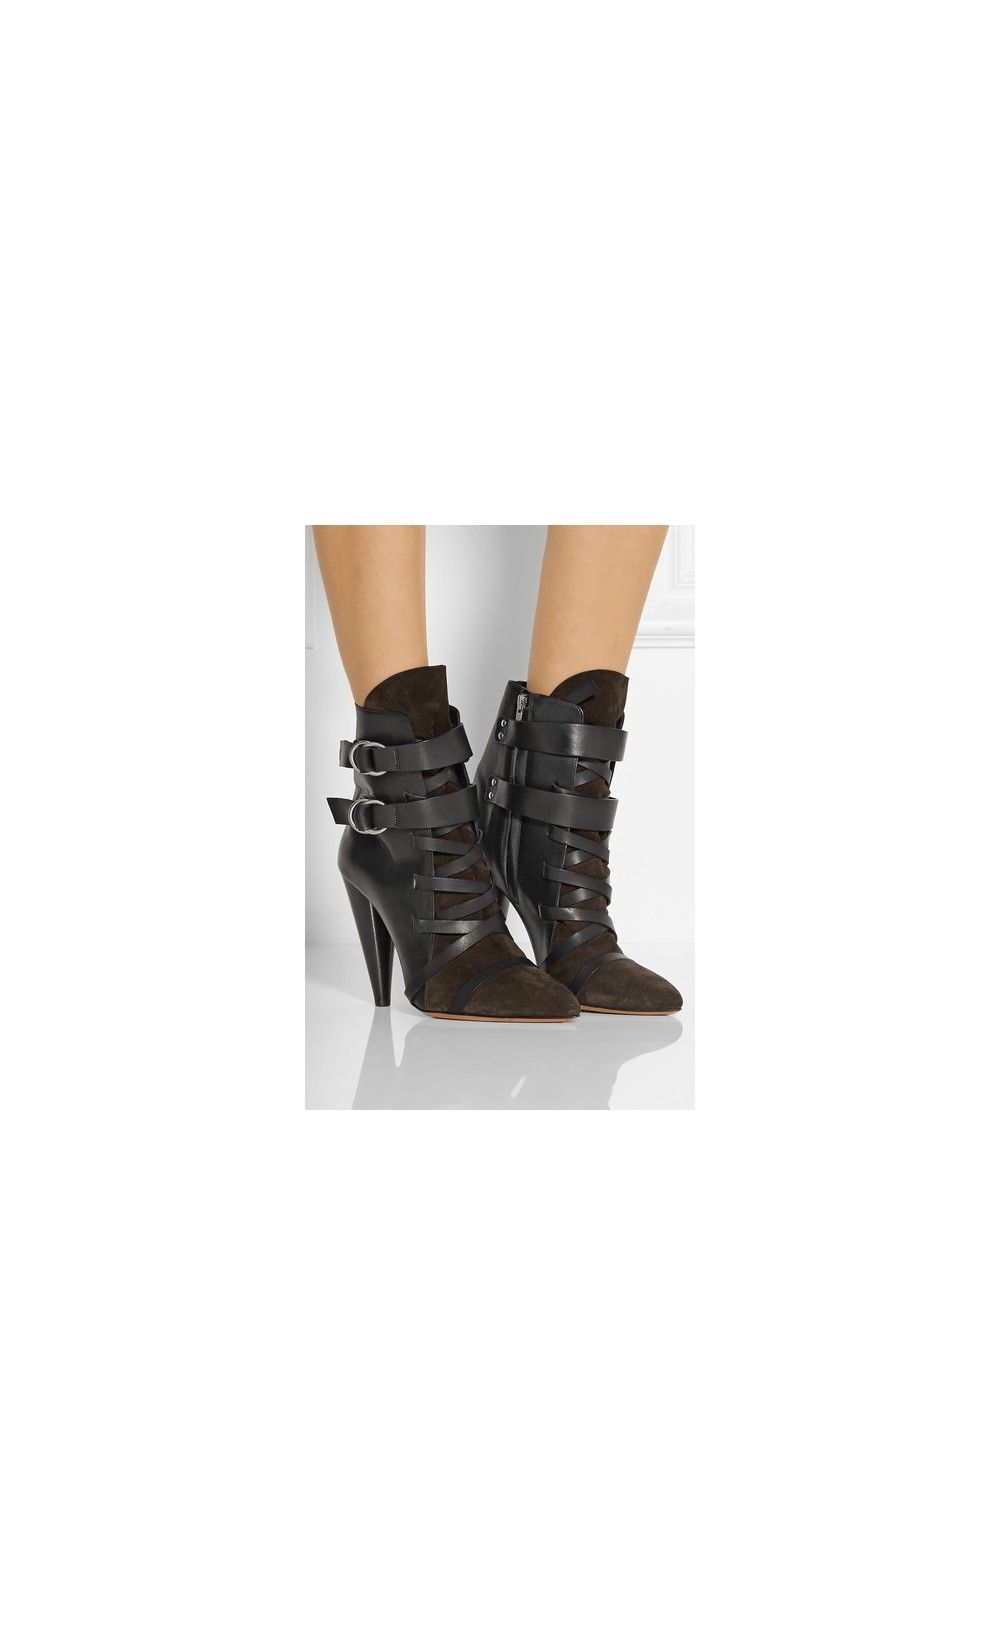 076b82ad301 Isabel Marant Royston Suede And Leather Ankle Boots - Isabel Marant  #TravelTuesday #inspiration